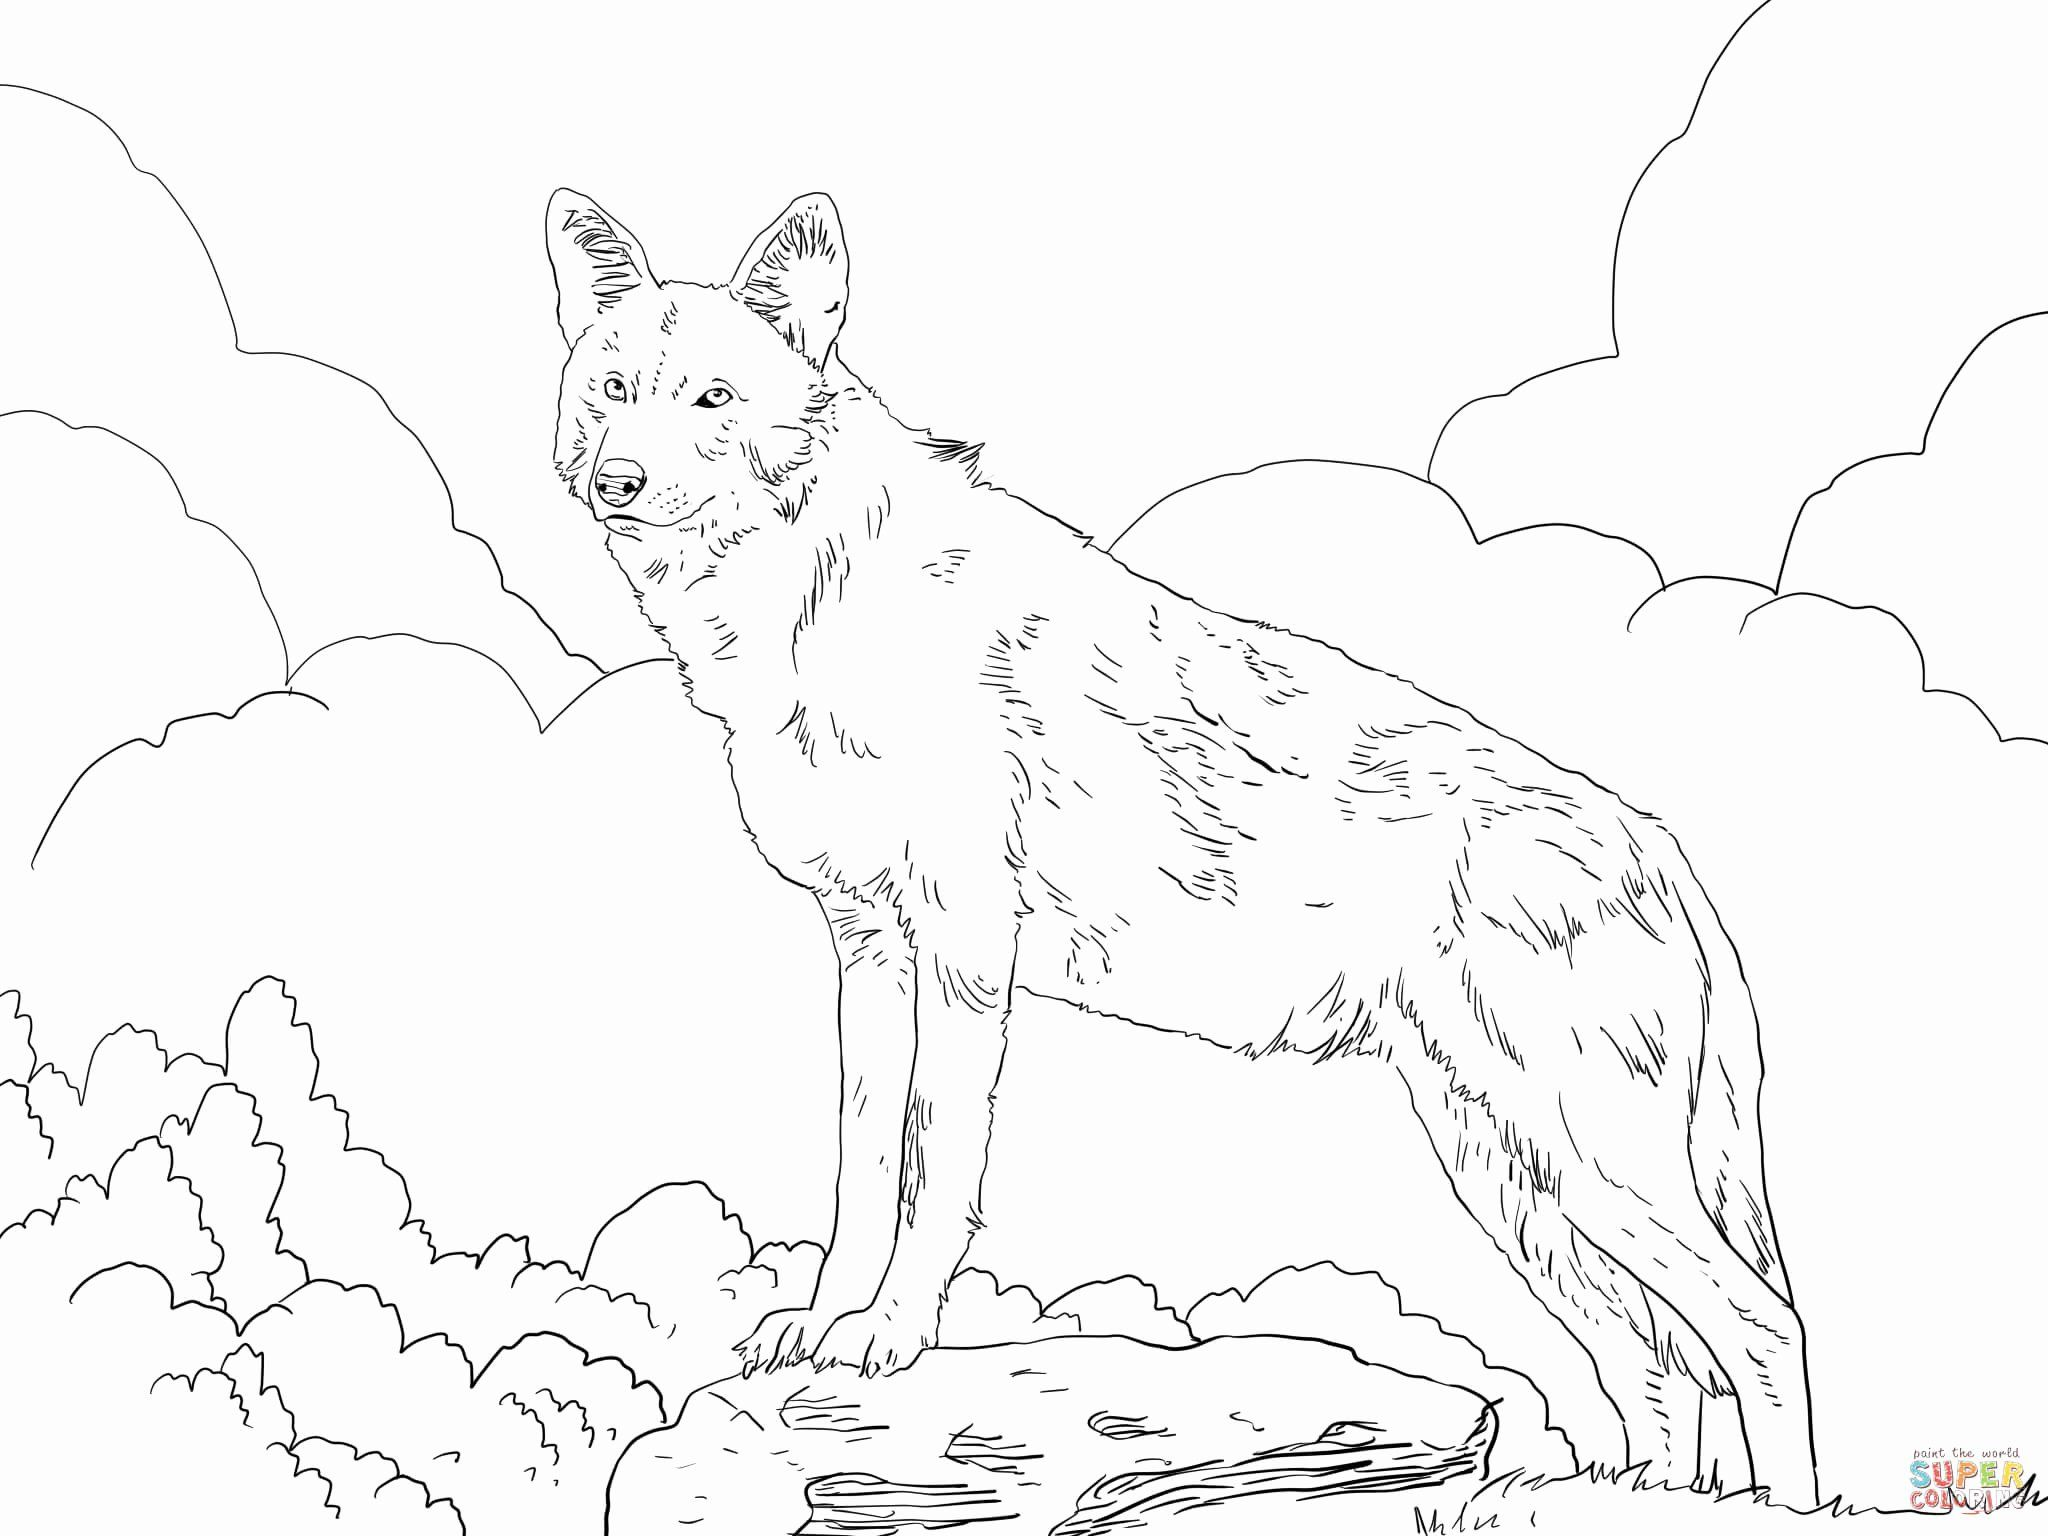 North America Coloring Page Unique North American Red Wolf Coloring Page Animal Coloring Pages Wolf Colors Coloring Pictures